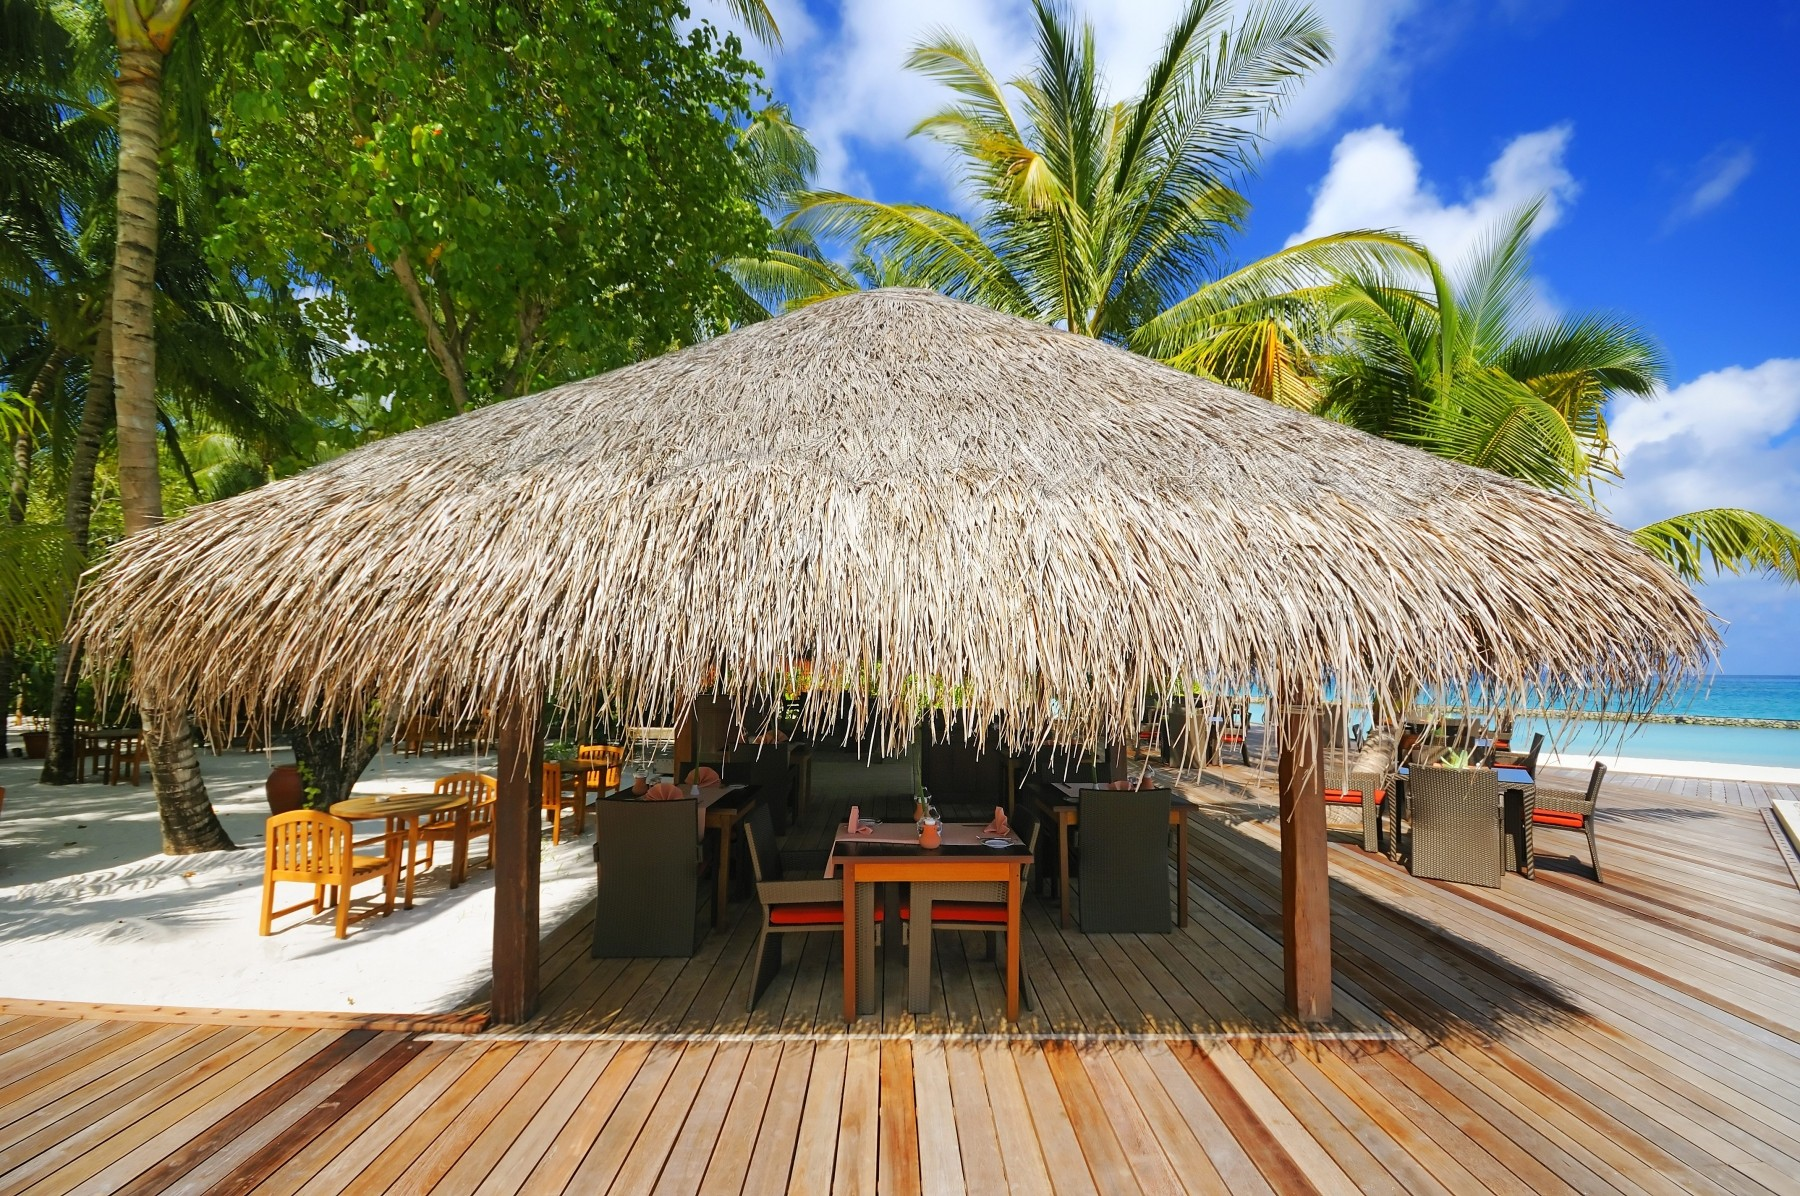 Why You Need a UV-Protected Roof - Endureed Synthetic Thatch